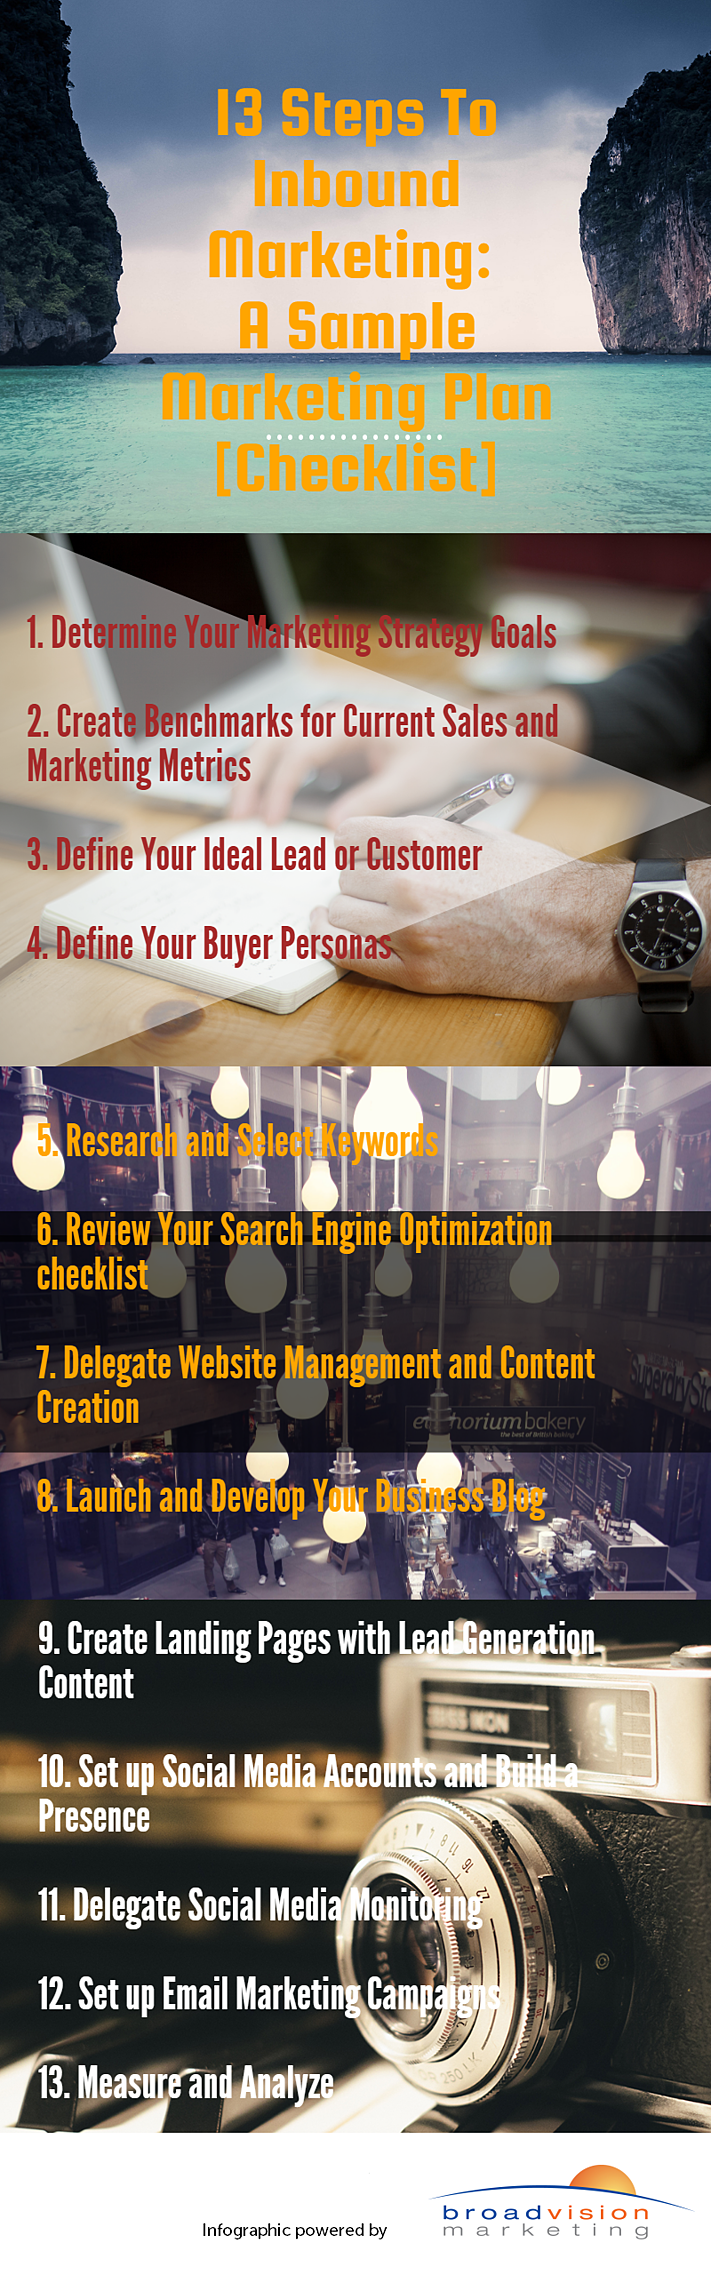 13-steps-of-sample-marketing-plan.png